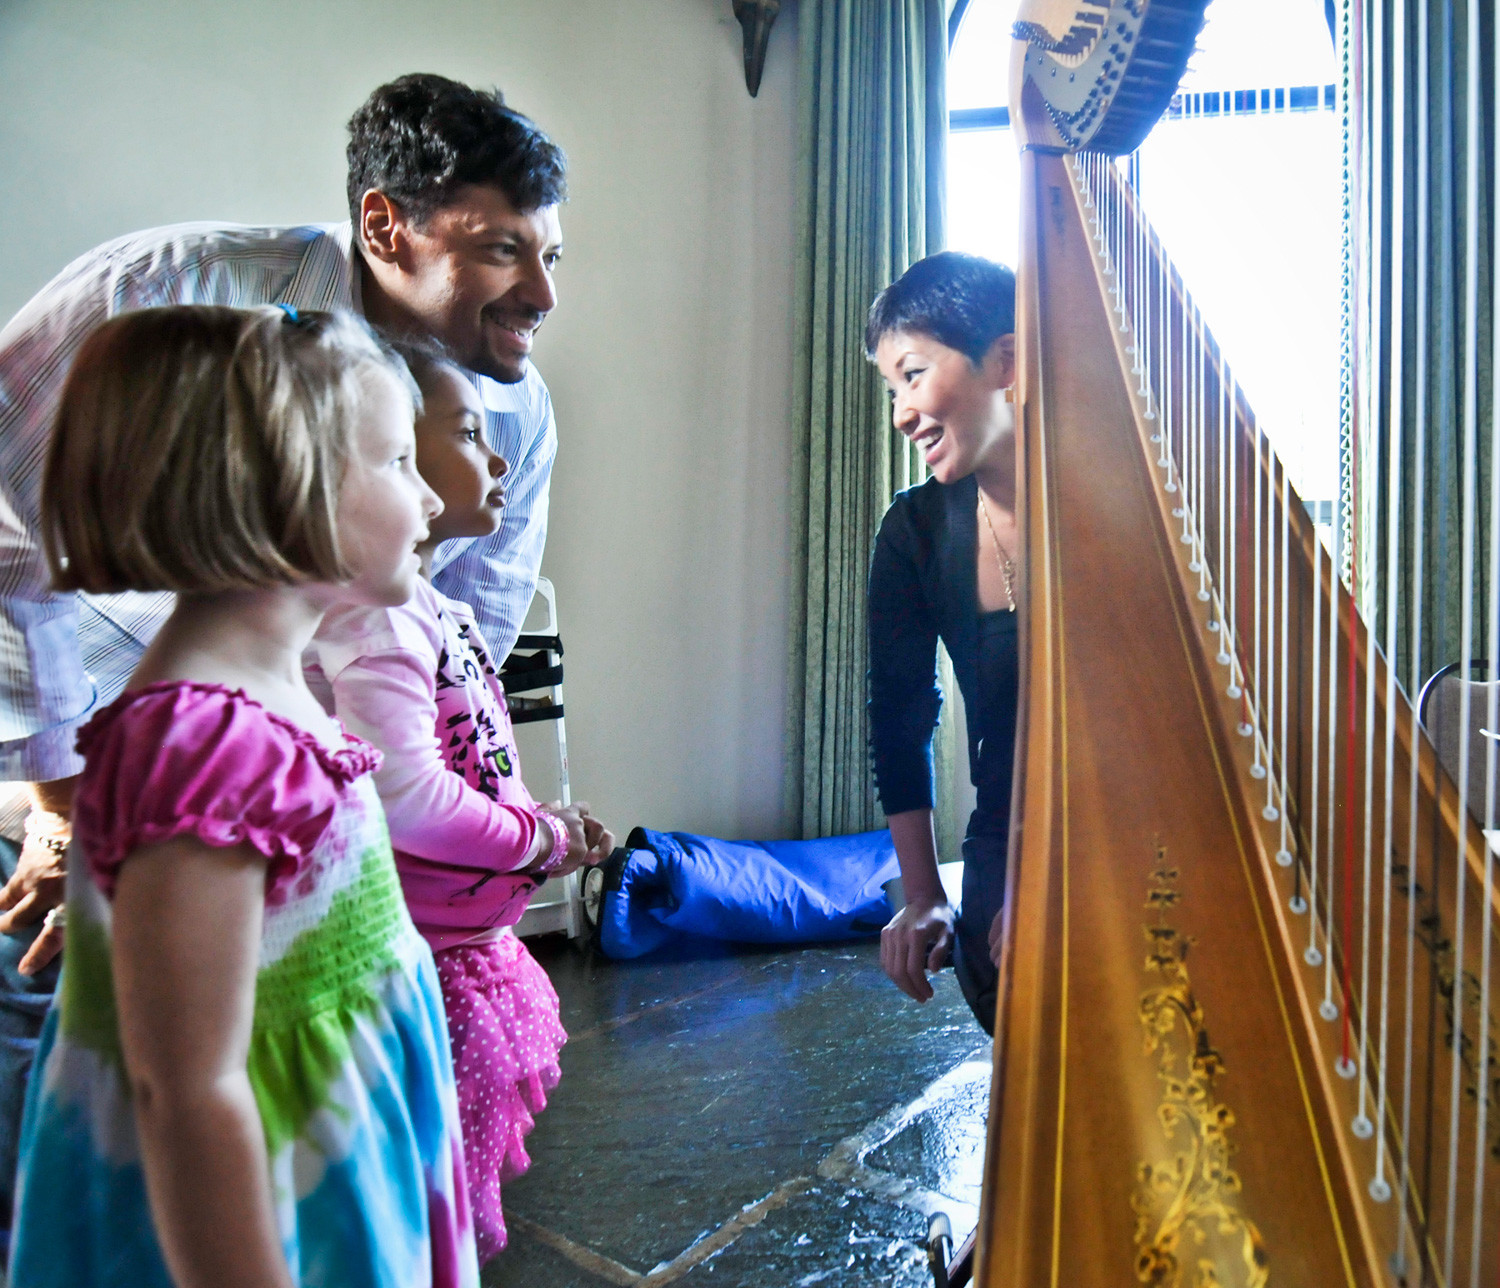 Harpist June Han interacts with children at a family concert The Sinfonietta of Riverdale held a few years ago. The classical music group is celebrating its 10th anniversary.